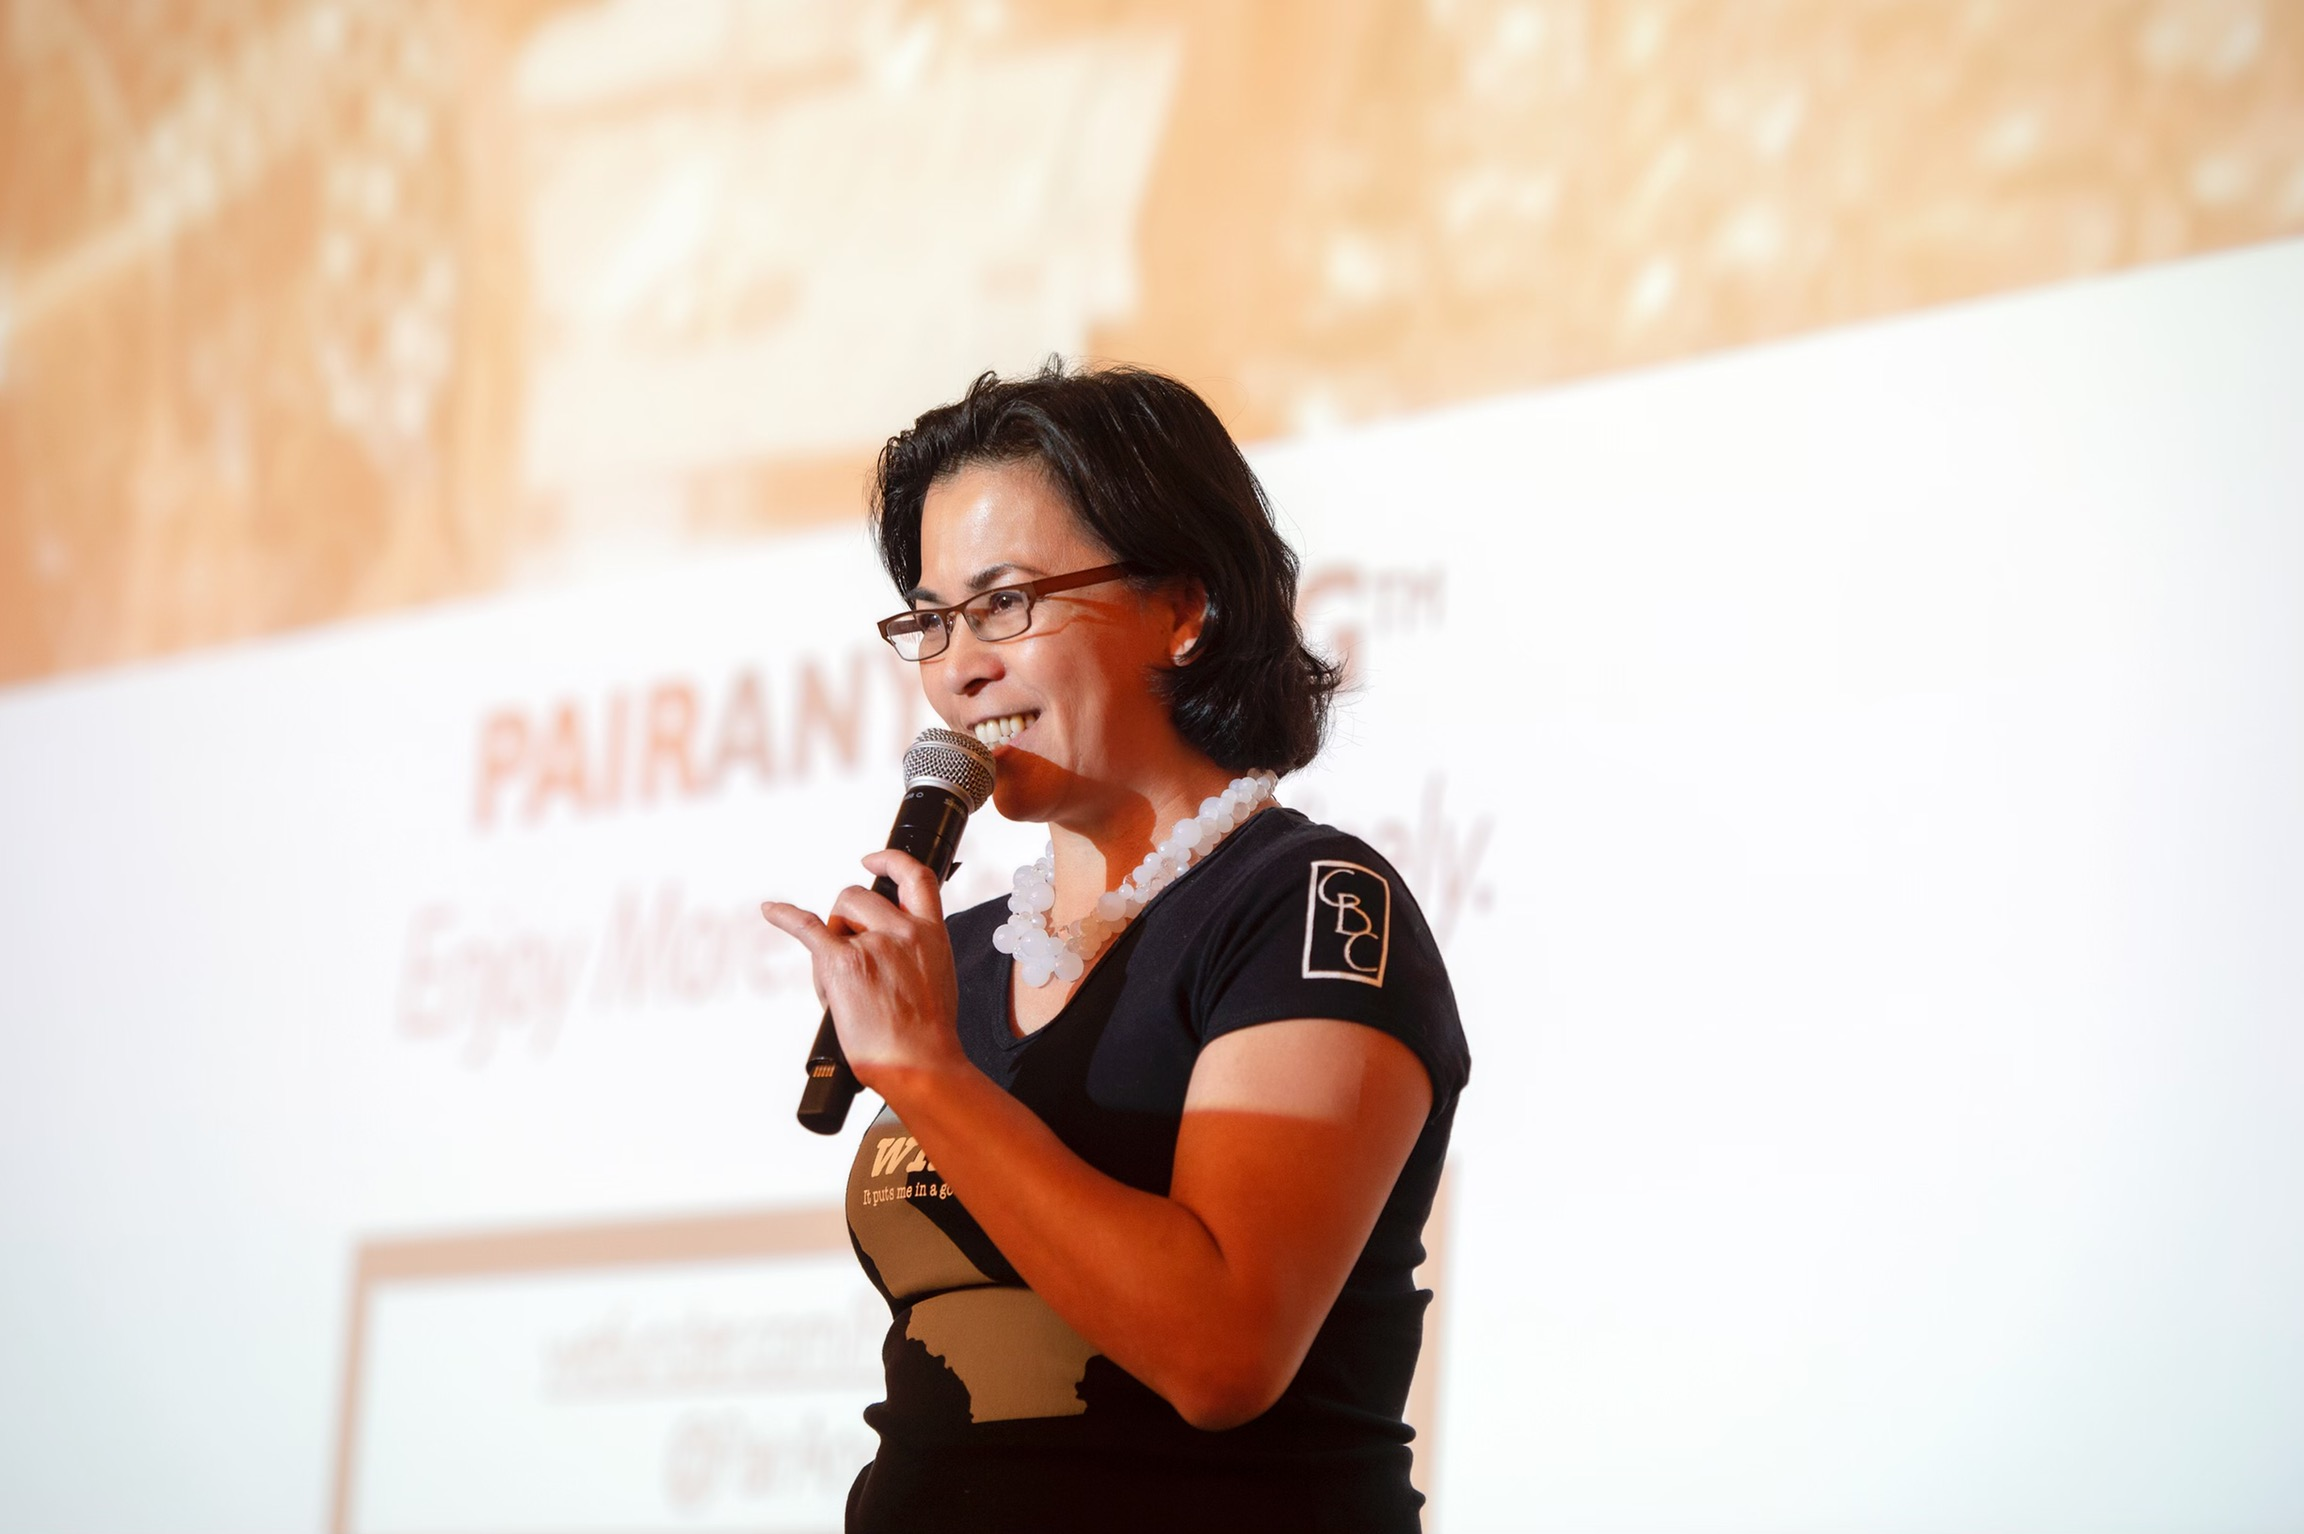 Christy Serrato  pitches  PairAnything  - personalizing wine experiences outside the tasting room